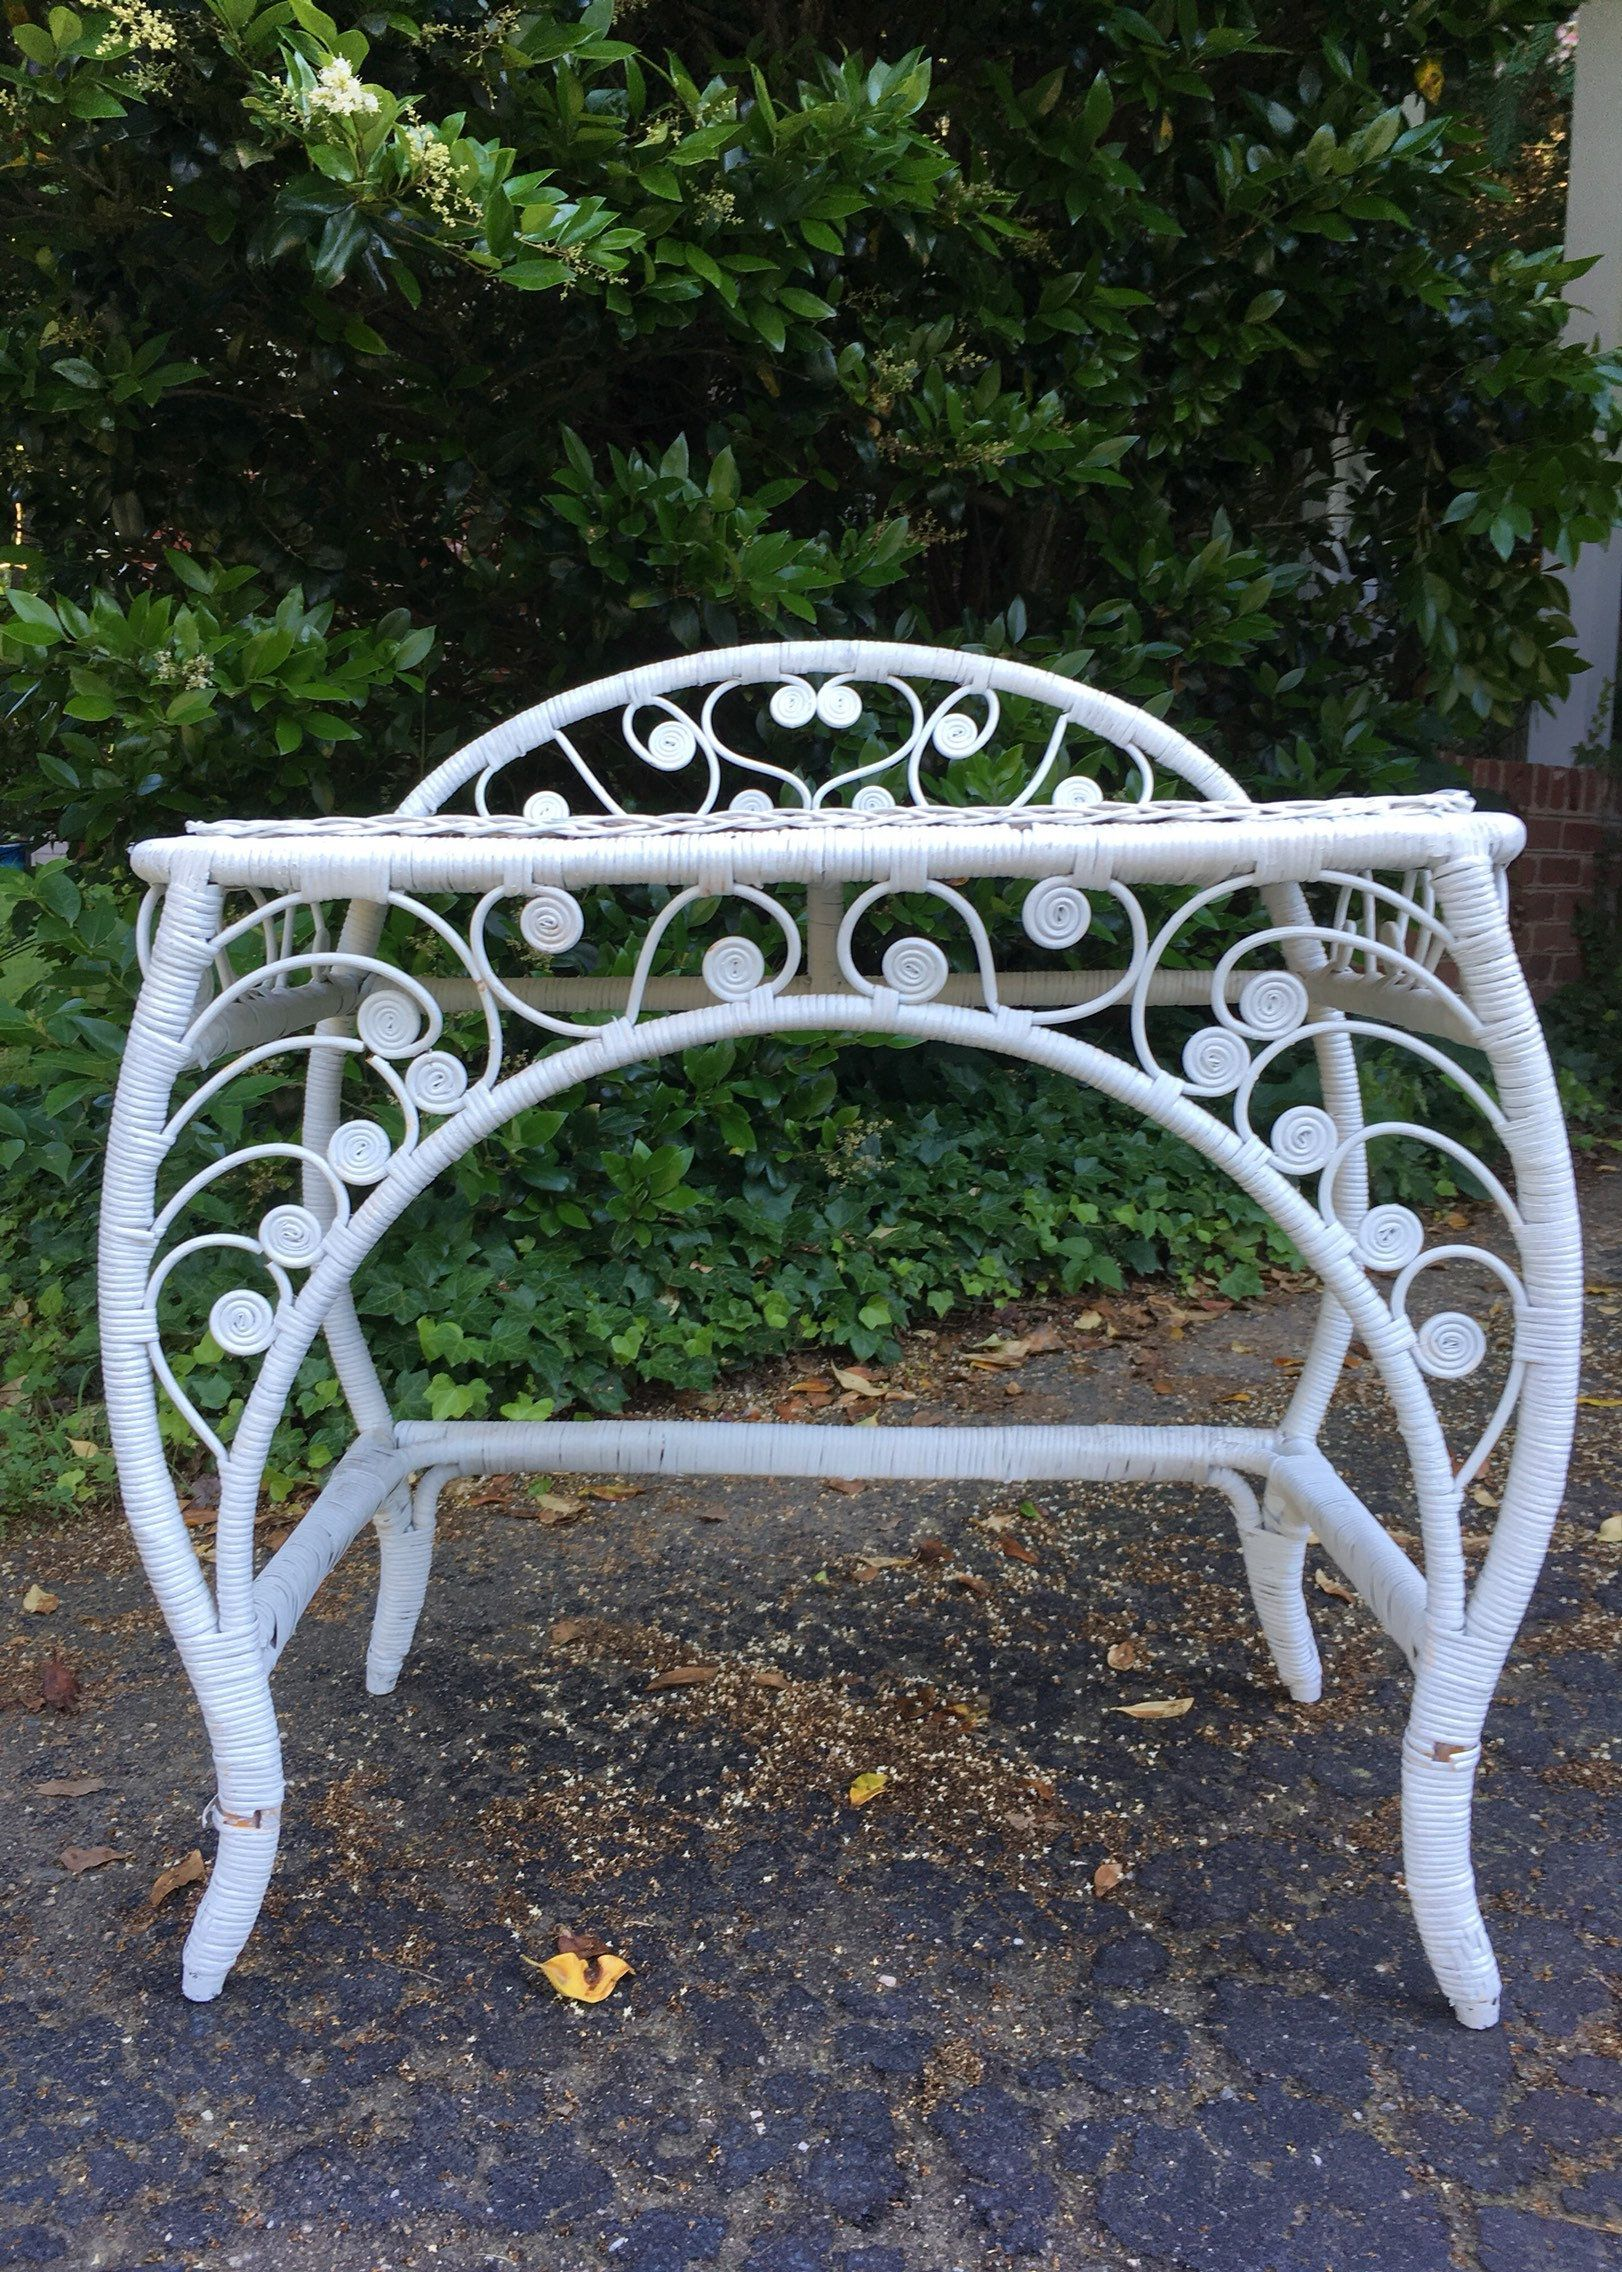 Tremendous Vintage White Rattan And Wicker Table Peacock Design Vanity Gmtry Best Dining Table And Chair Ideas Images Gmtryco